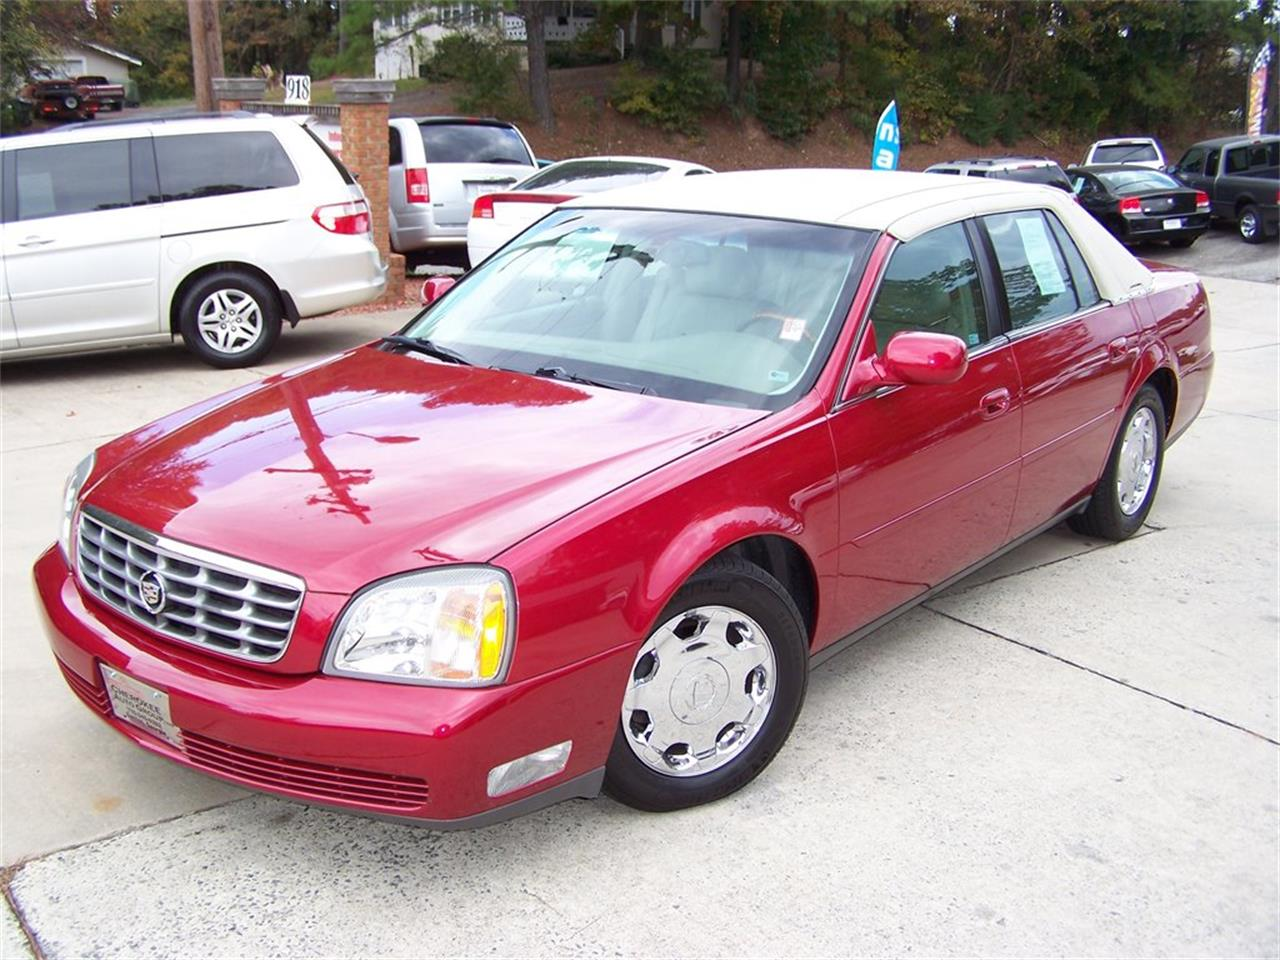 2002 cadillac deville for sale classiccars com cc 1060740 2002 cadillac deville for sale